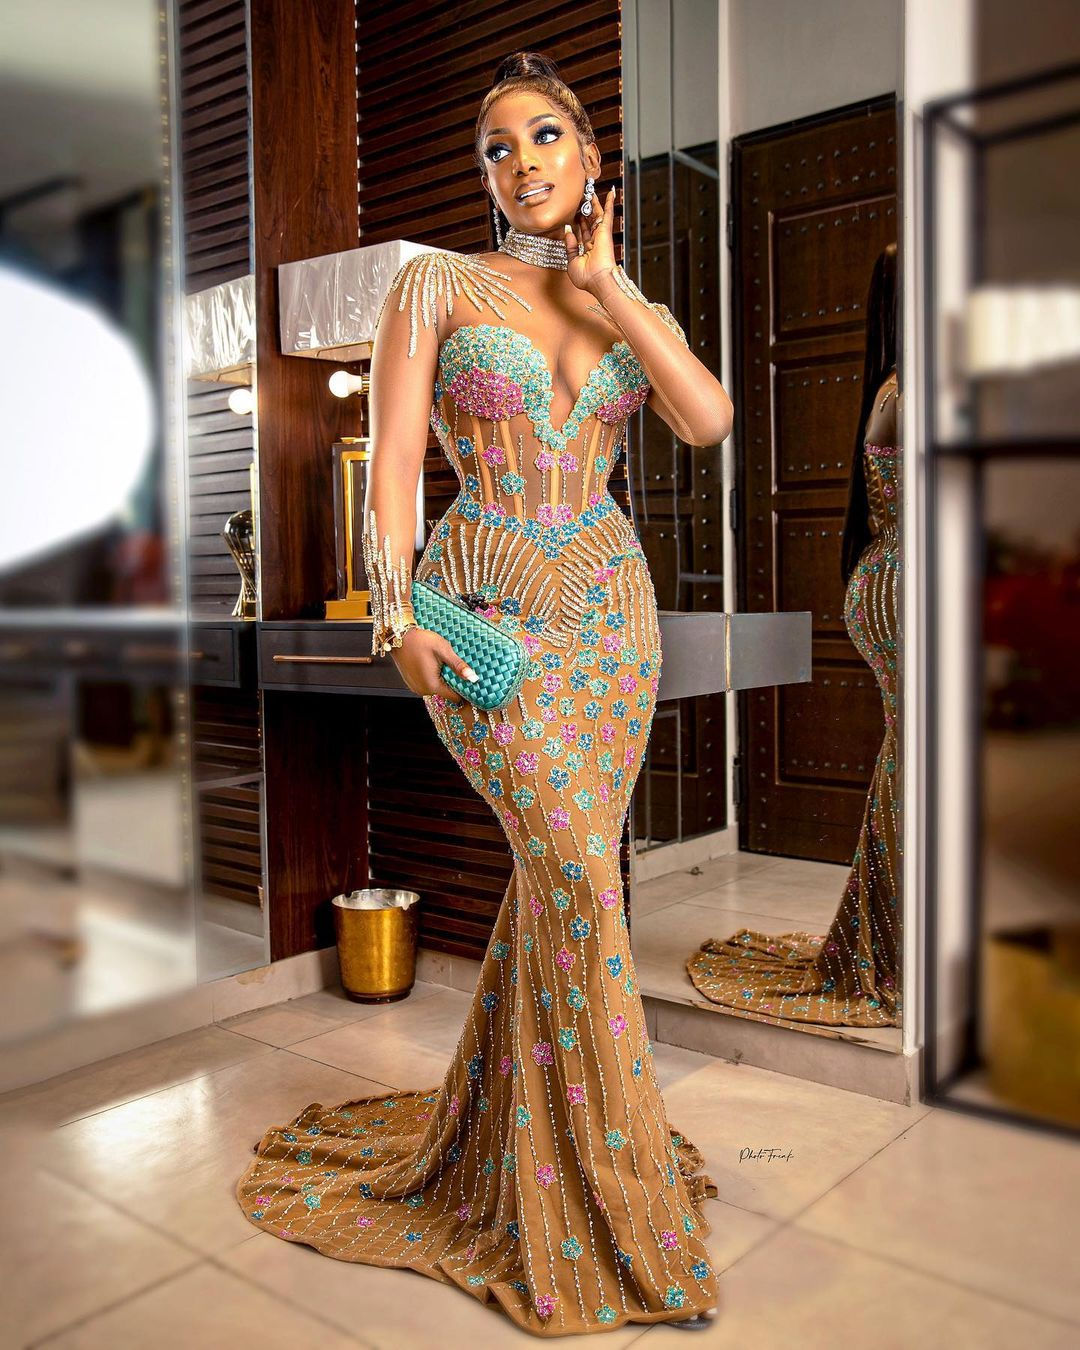 Chioma Goodhair- A Chic Outfit To Party With